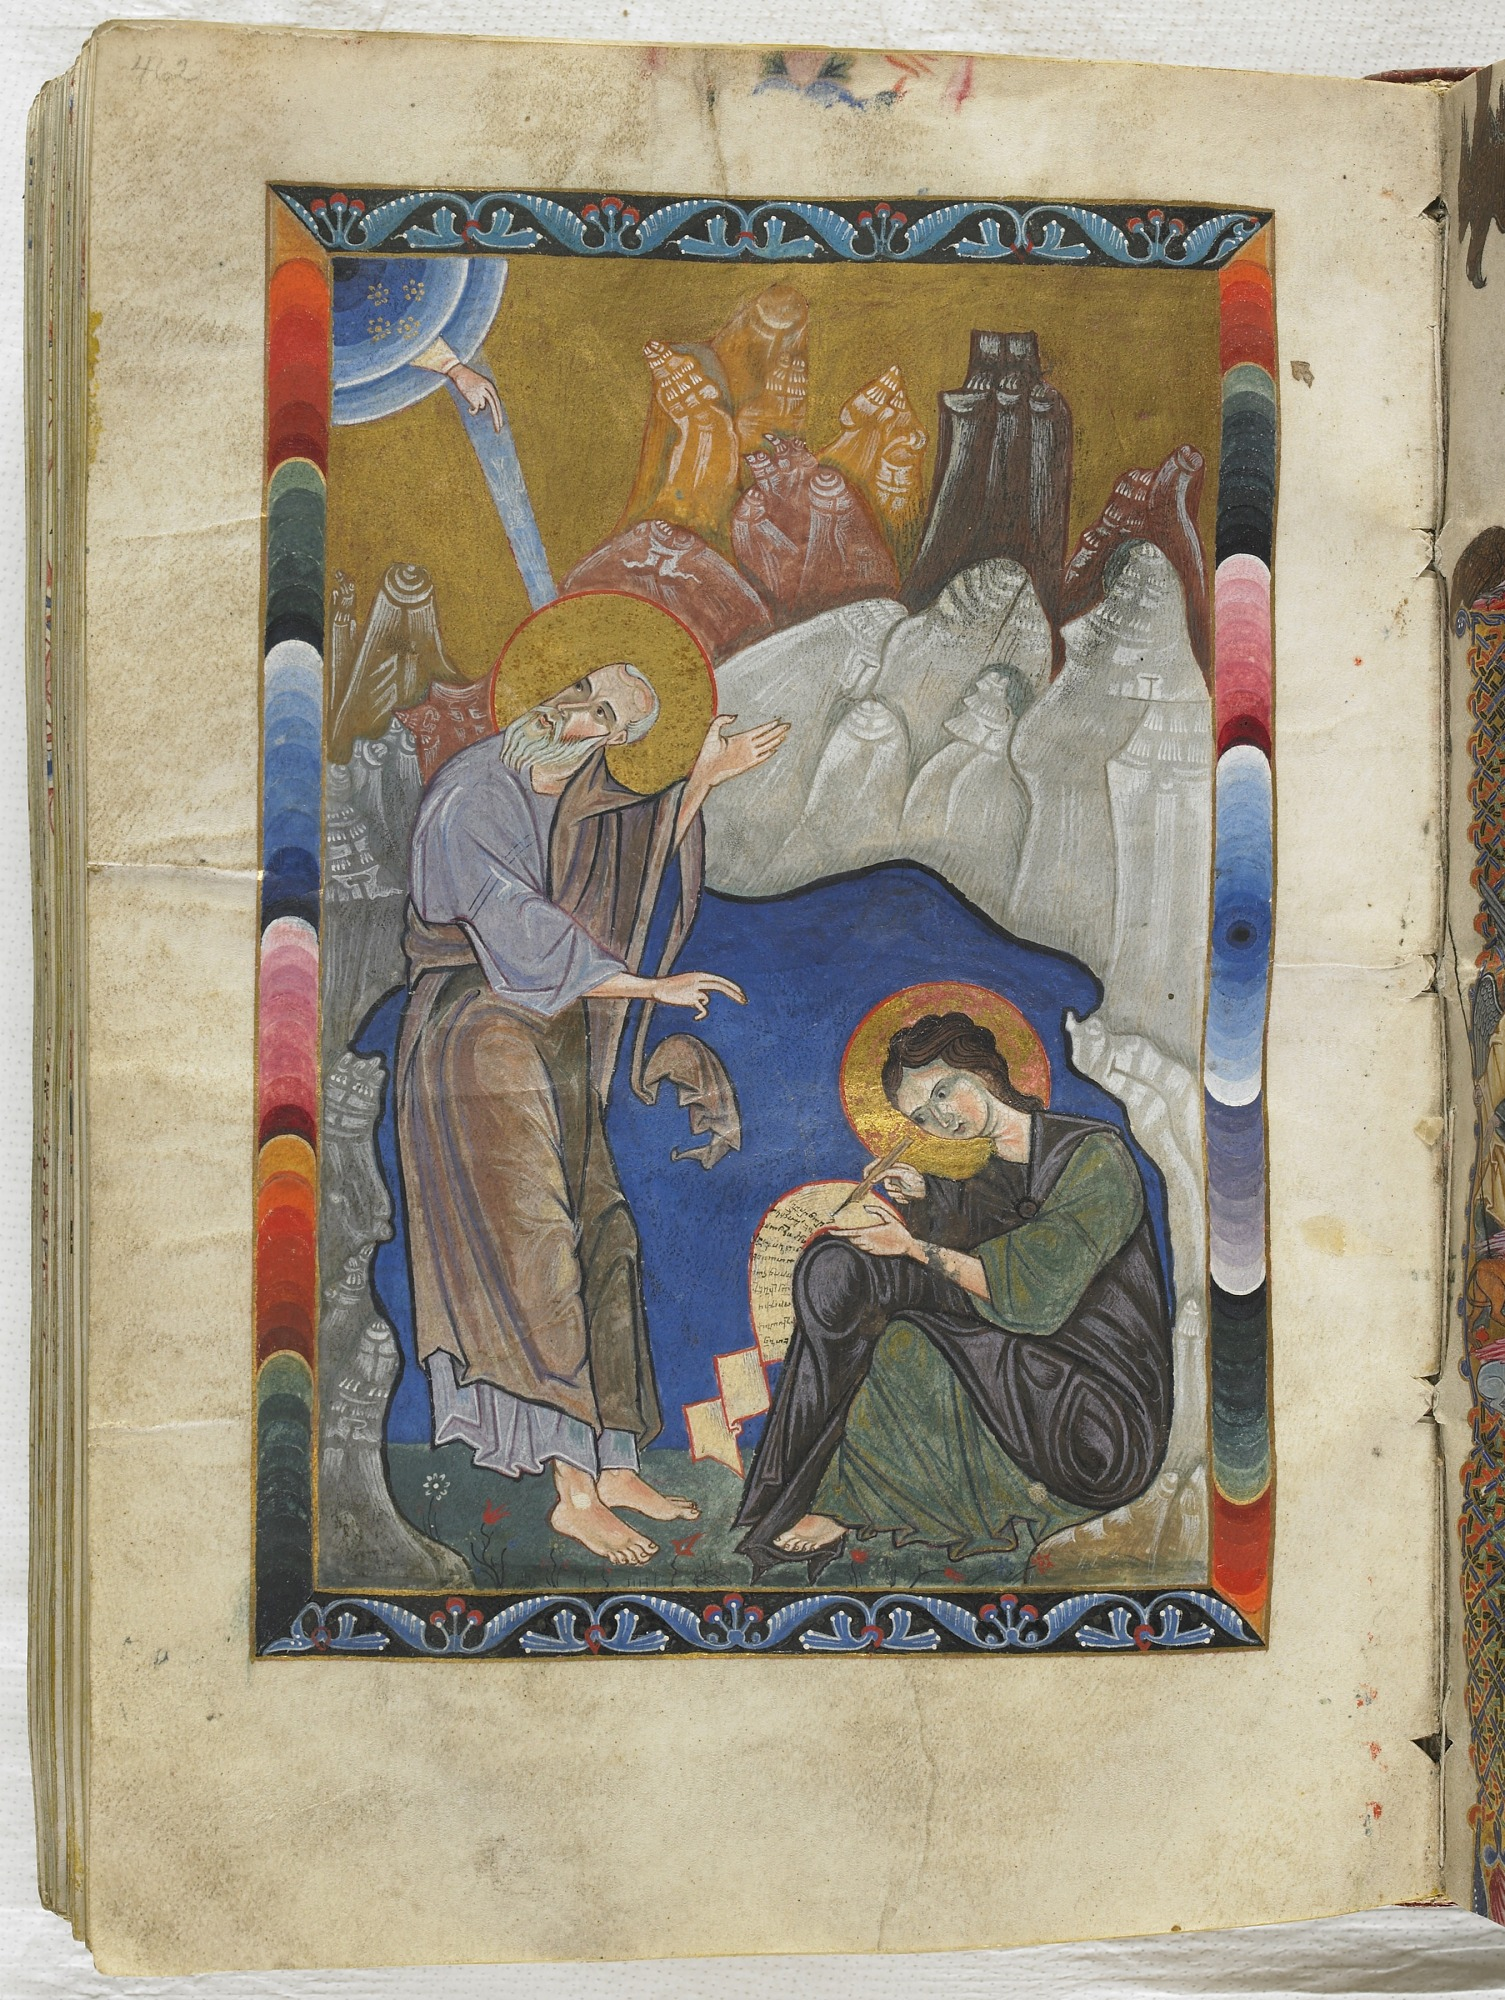 folio 462: The Gospel according to the Four Evangelists